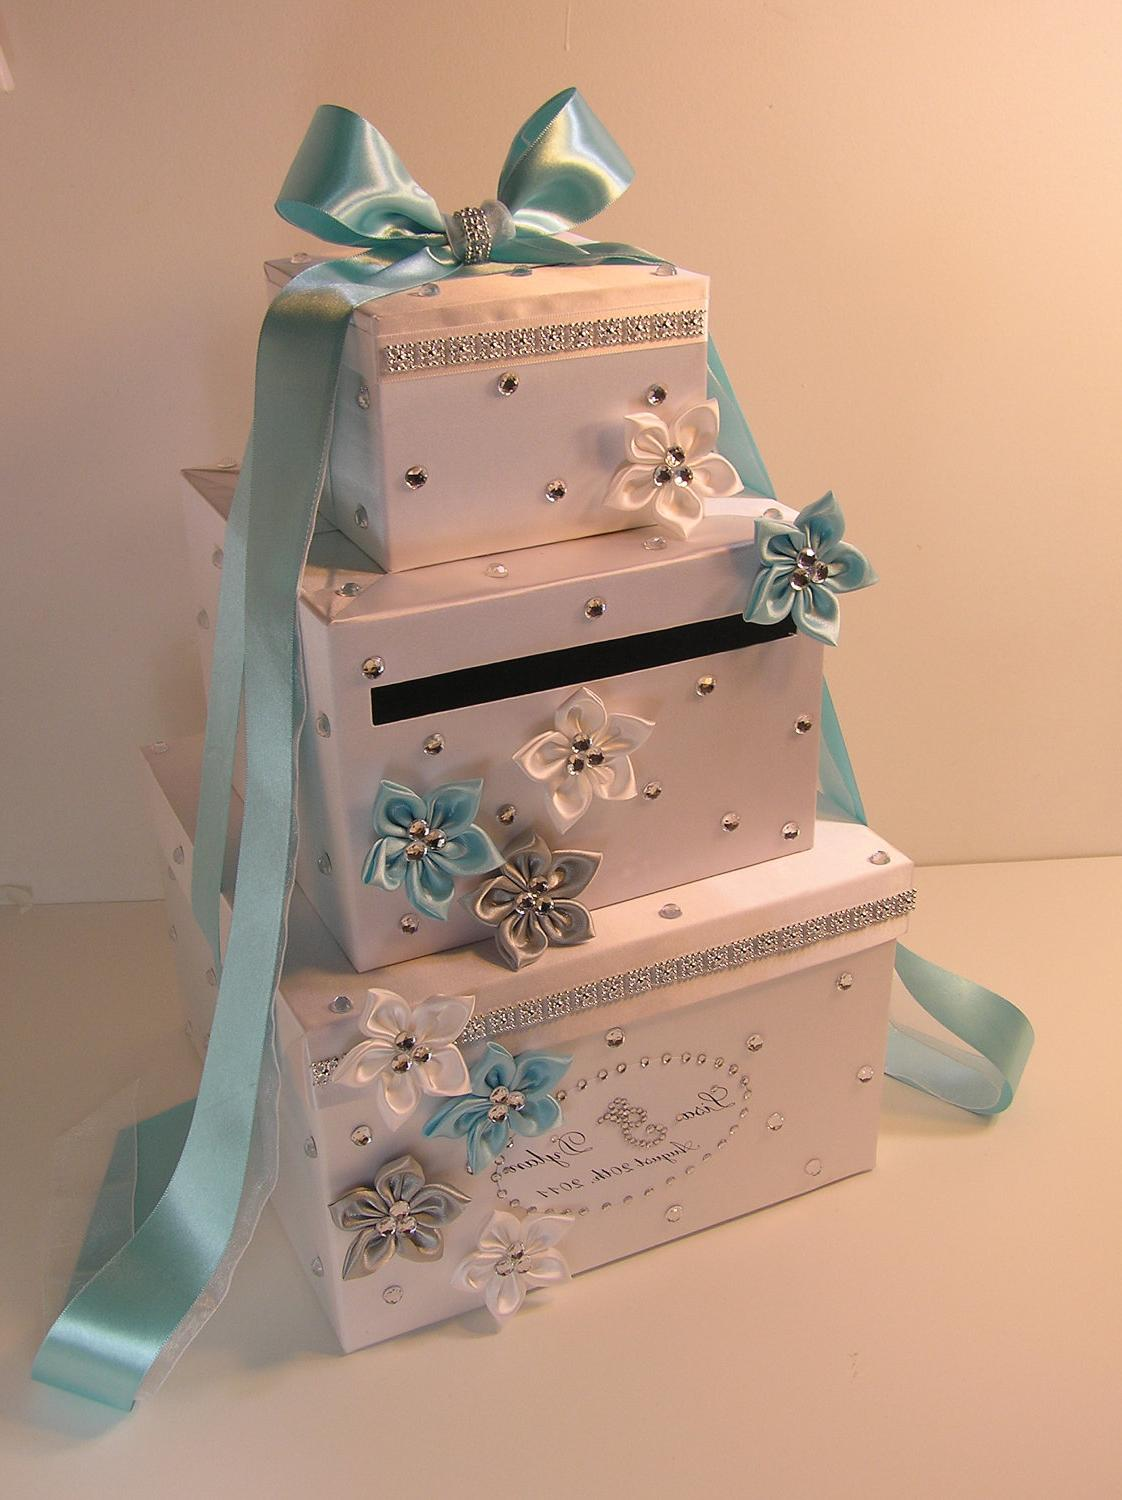 Wedding Gift Card Containers : Ideas Wedding Gift Box Card Holder wedding card gift box ideas cards ...